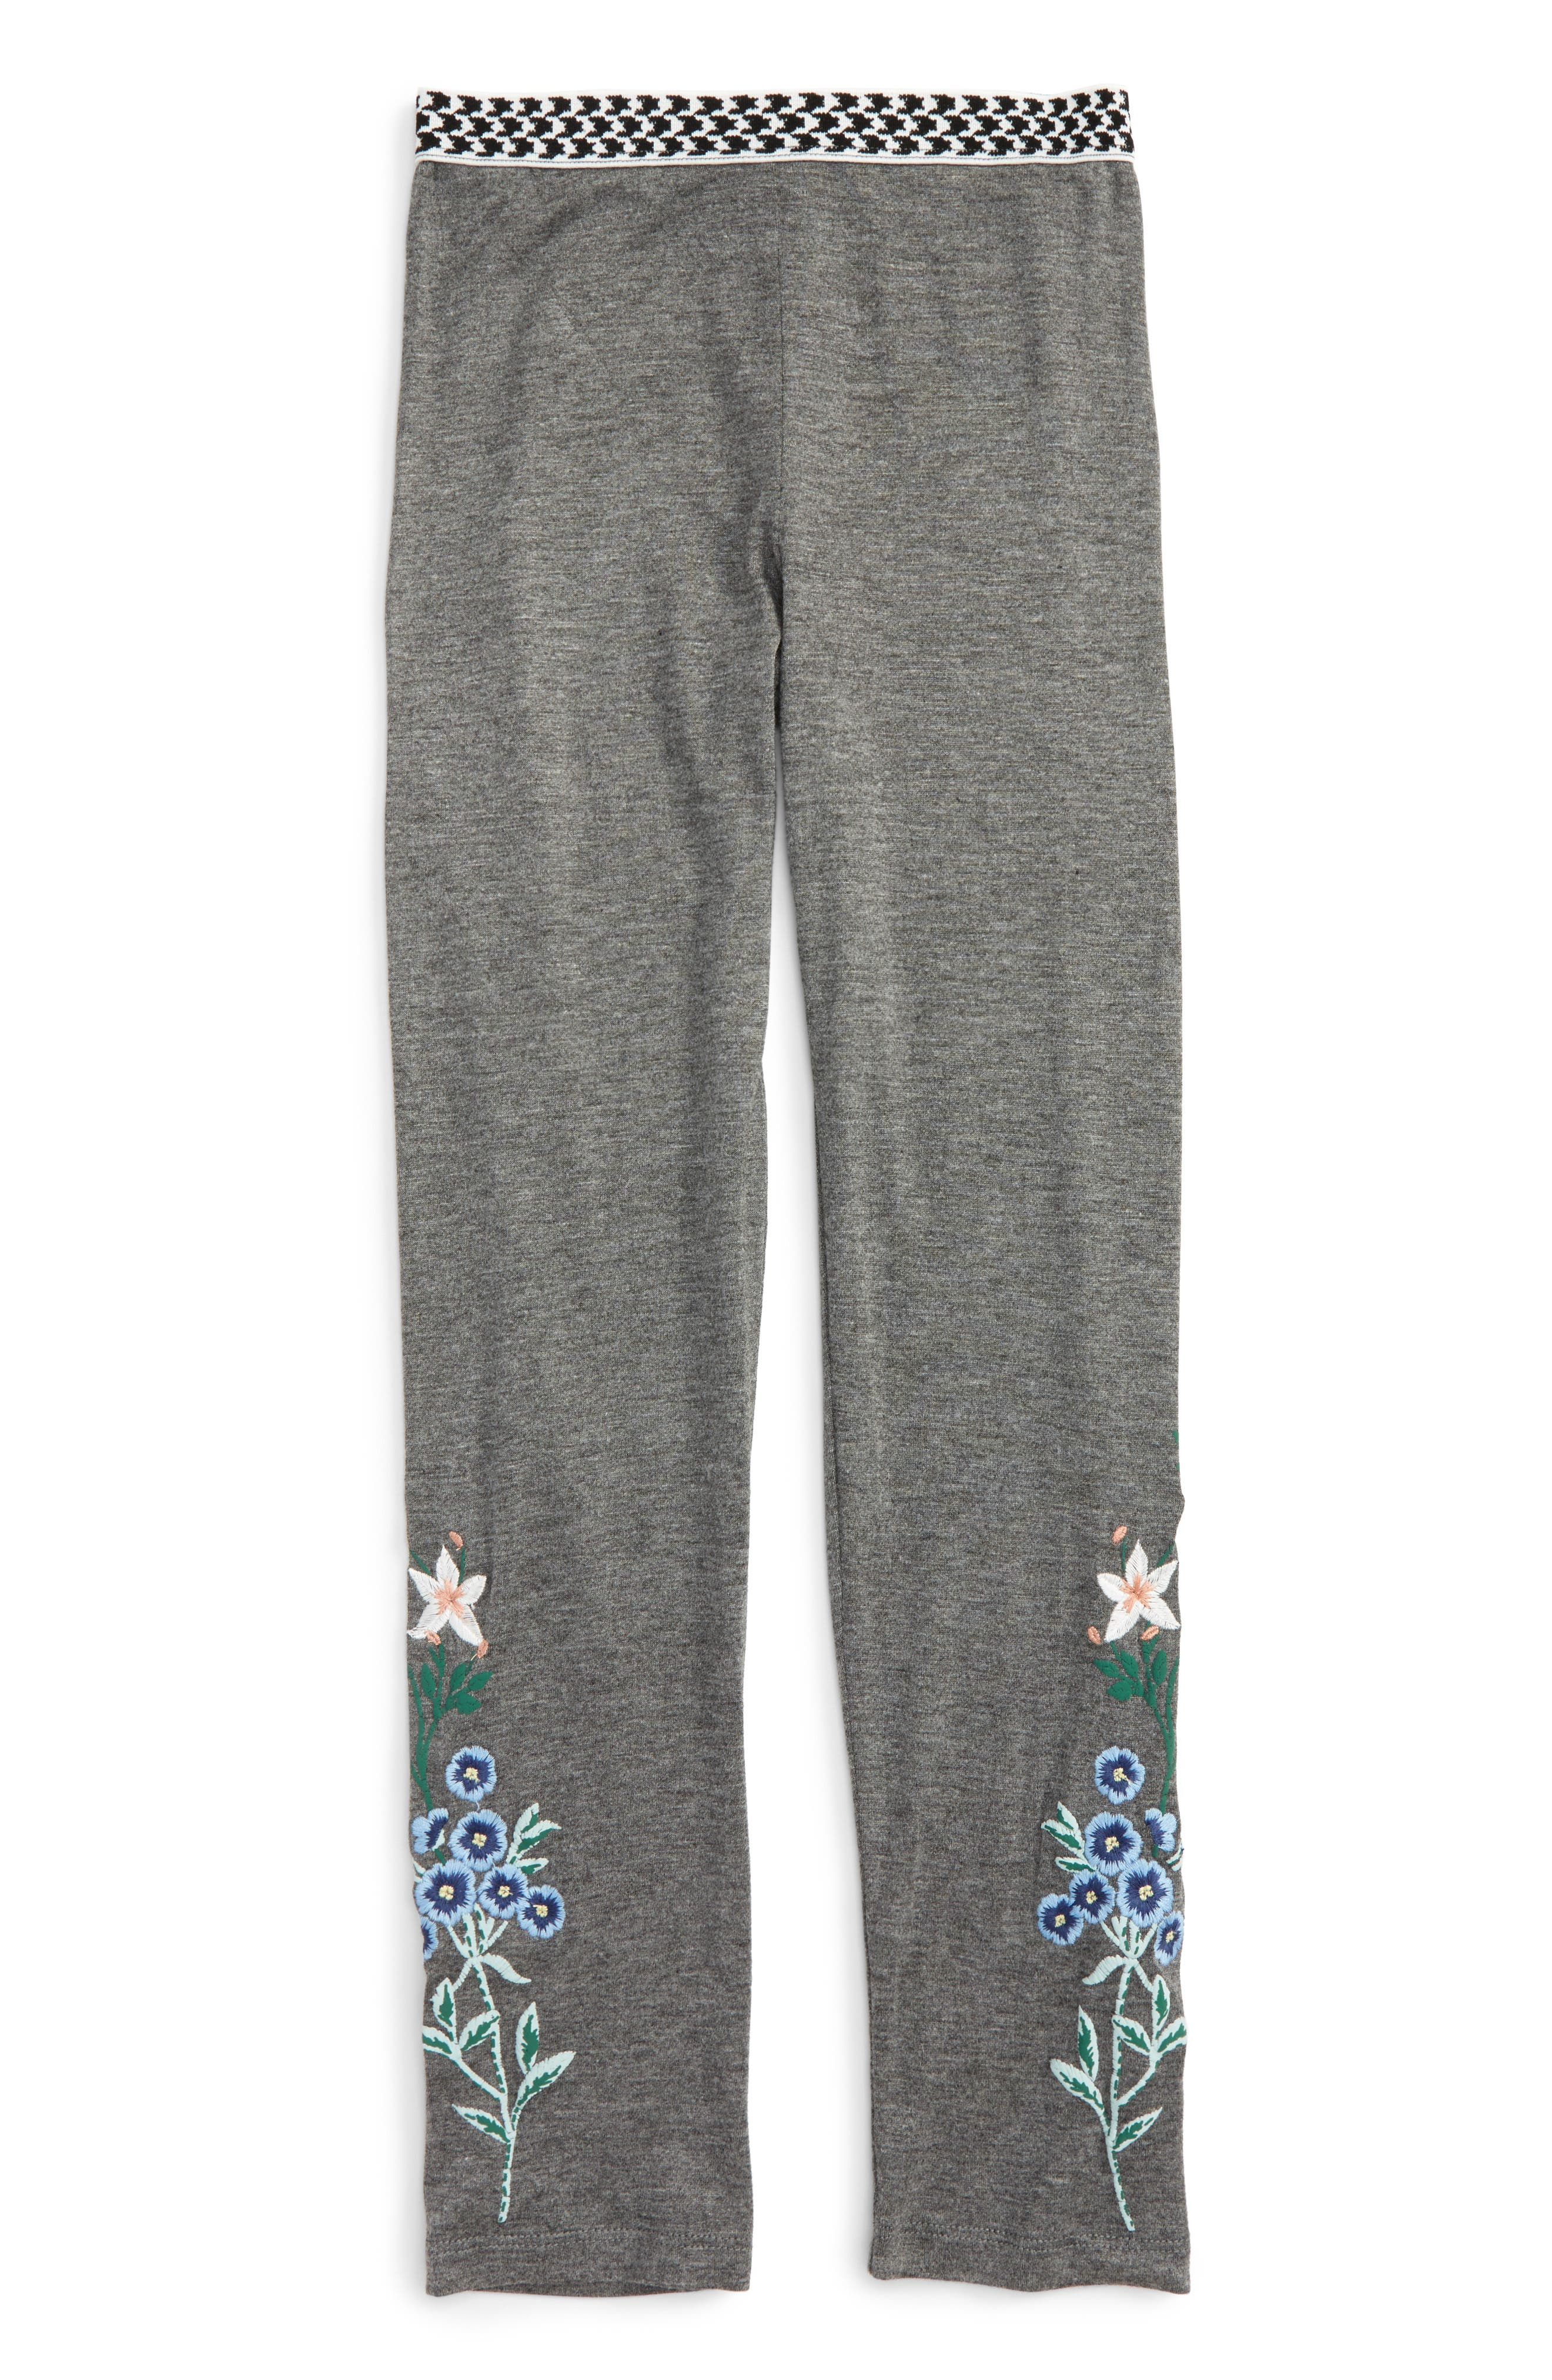 Main Image - Truly Me Embroidered Leggings (Toddler Girls & Little Girls)